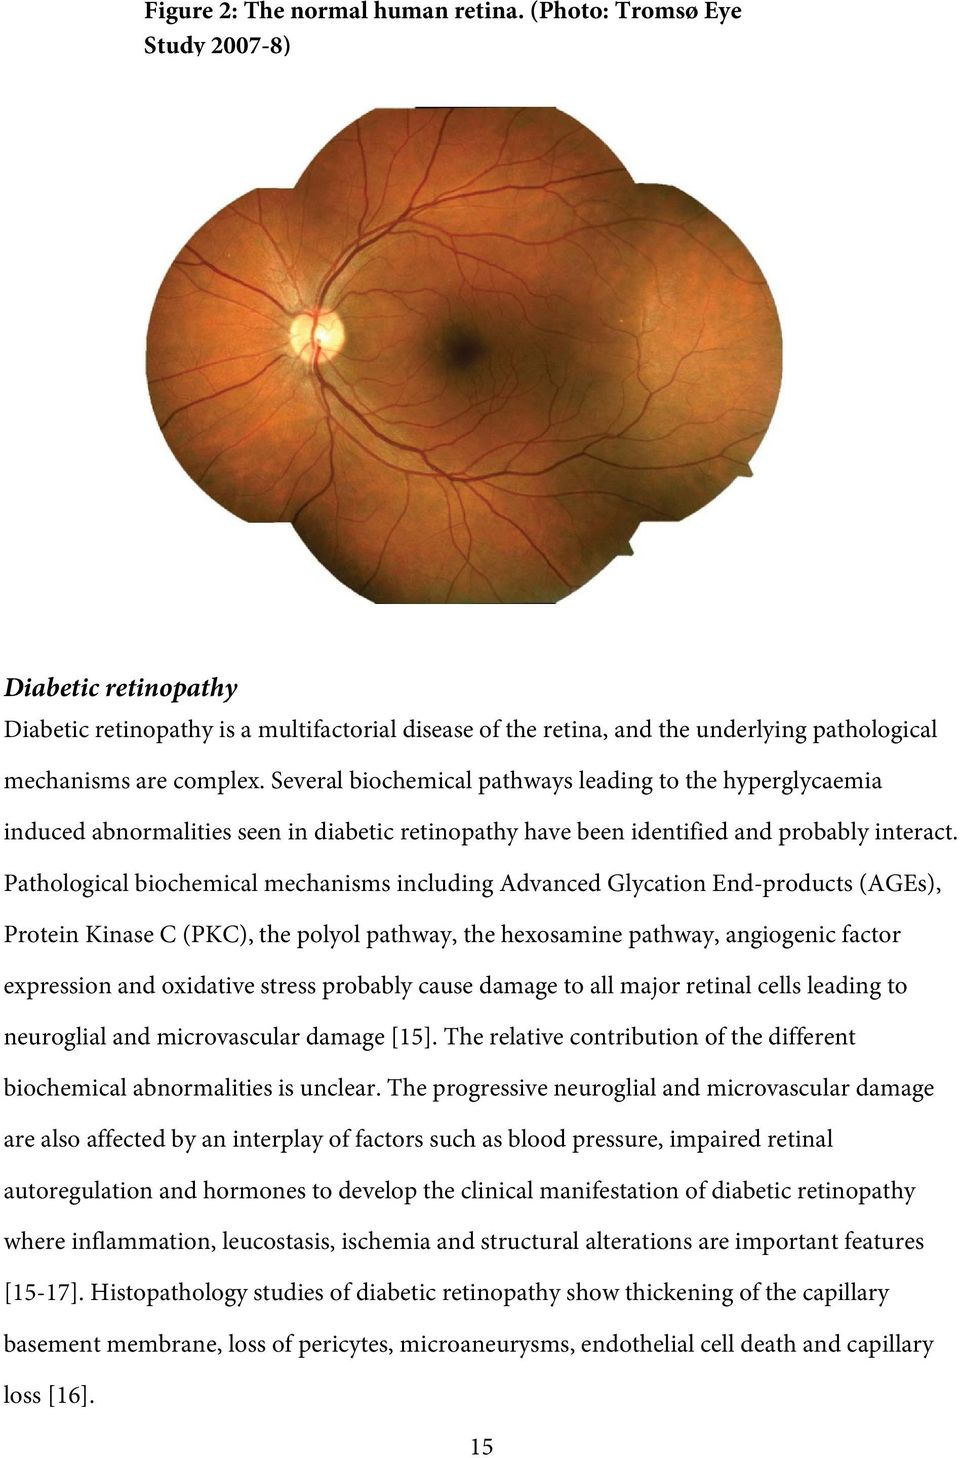 Several biohemial pathways leading to the hyperglyaemia indued abnormalities seen in diabeti retinopathy have been identified and probably interat.